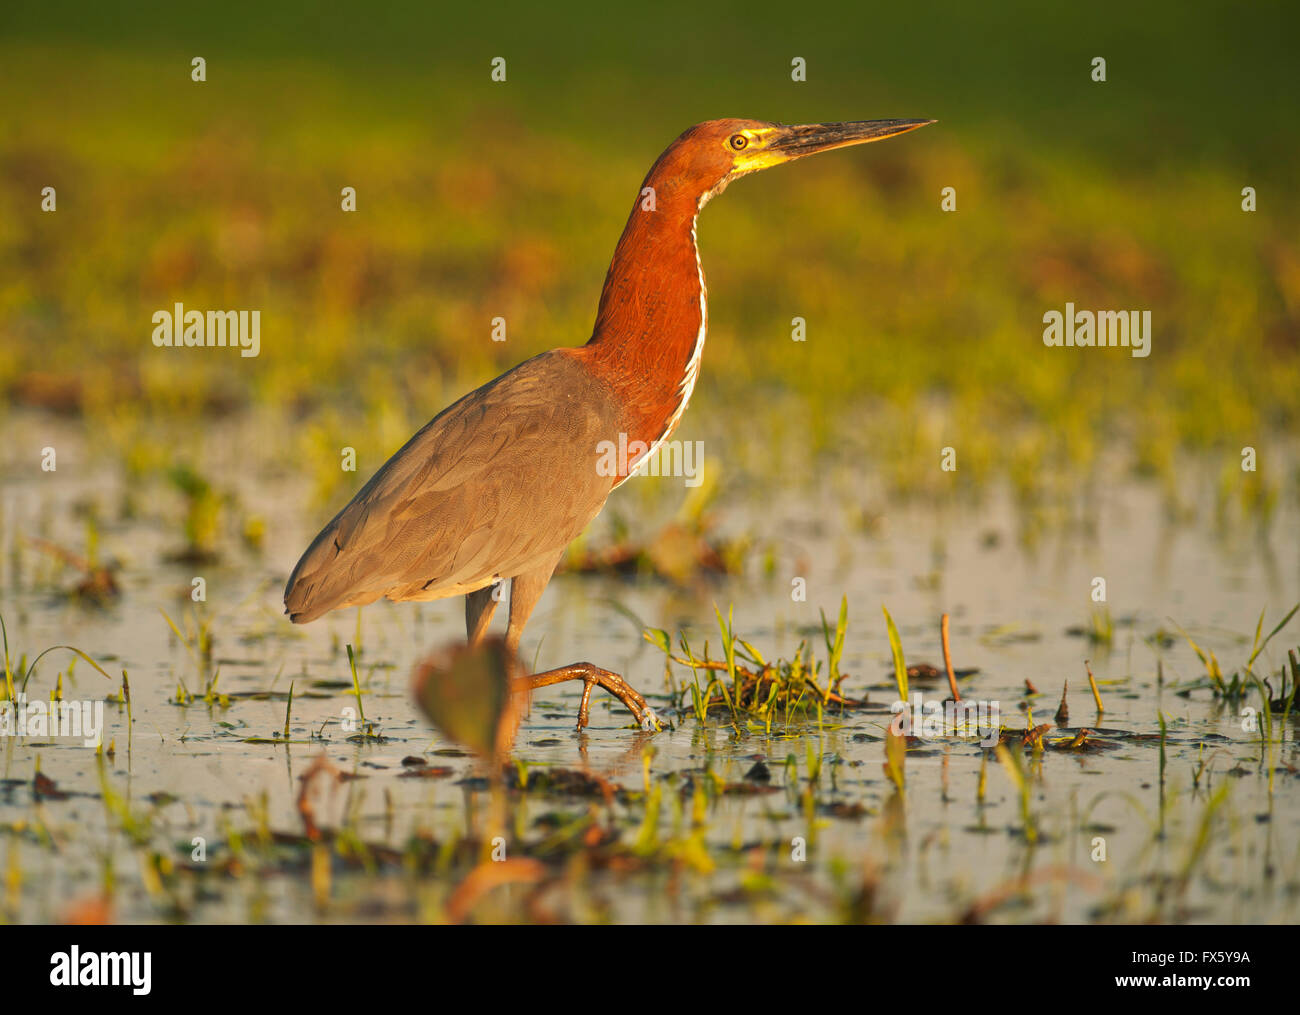 Rufescent Tiger Heron (Tigrisoma lineatum)  Pantanal, Brazil Stock Photo